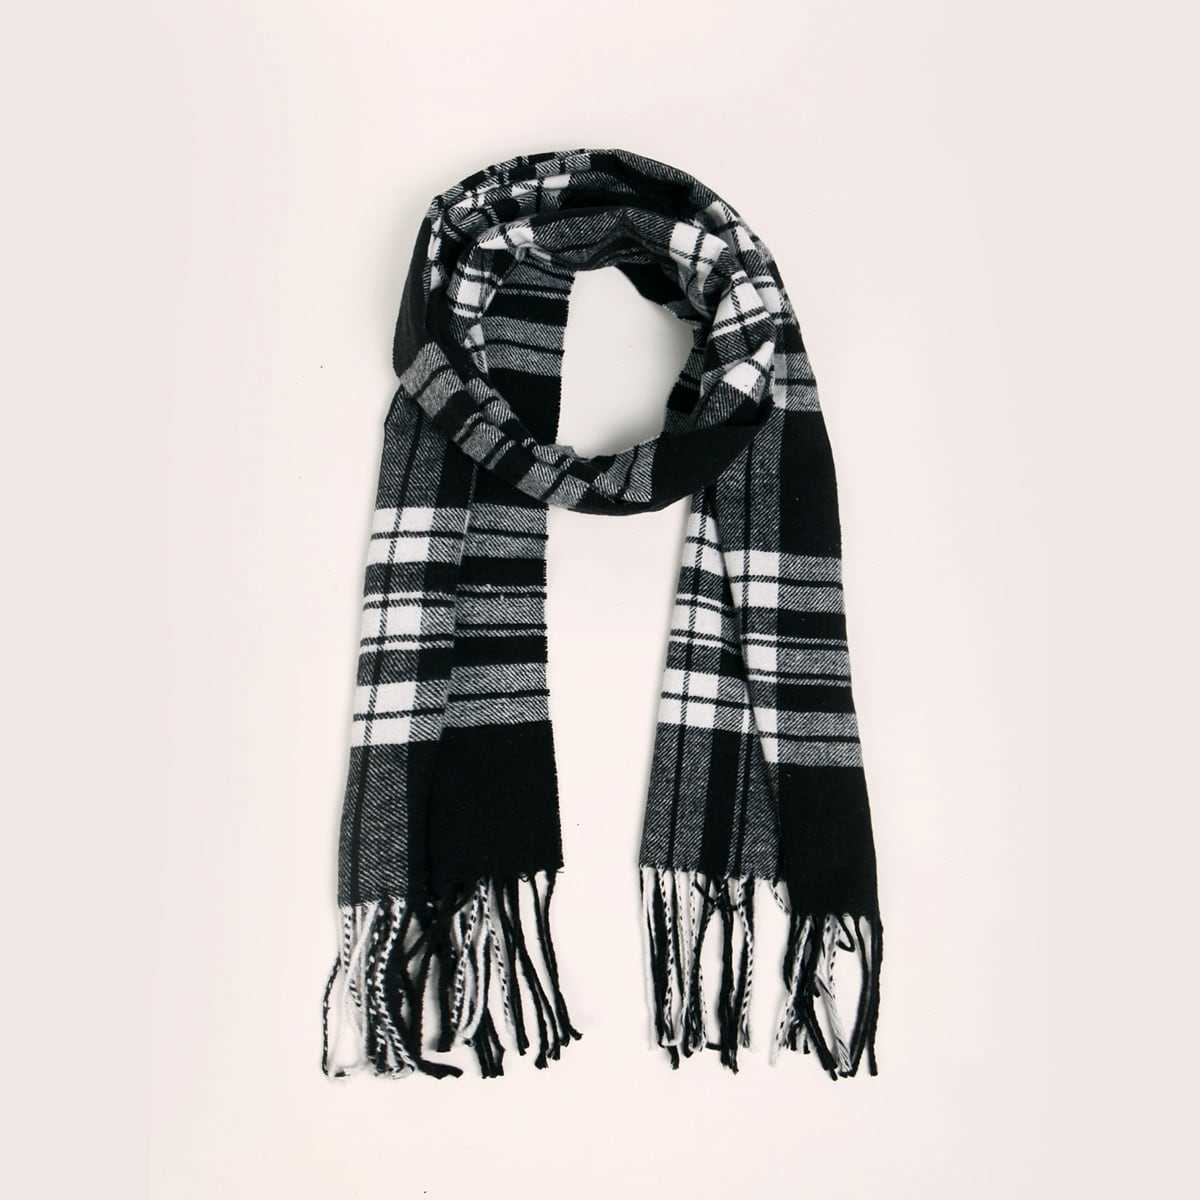 Guys Plaid Pattern Tassel Decor Scarf in Multicolor by ROMWE on GOOFASH